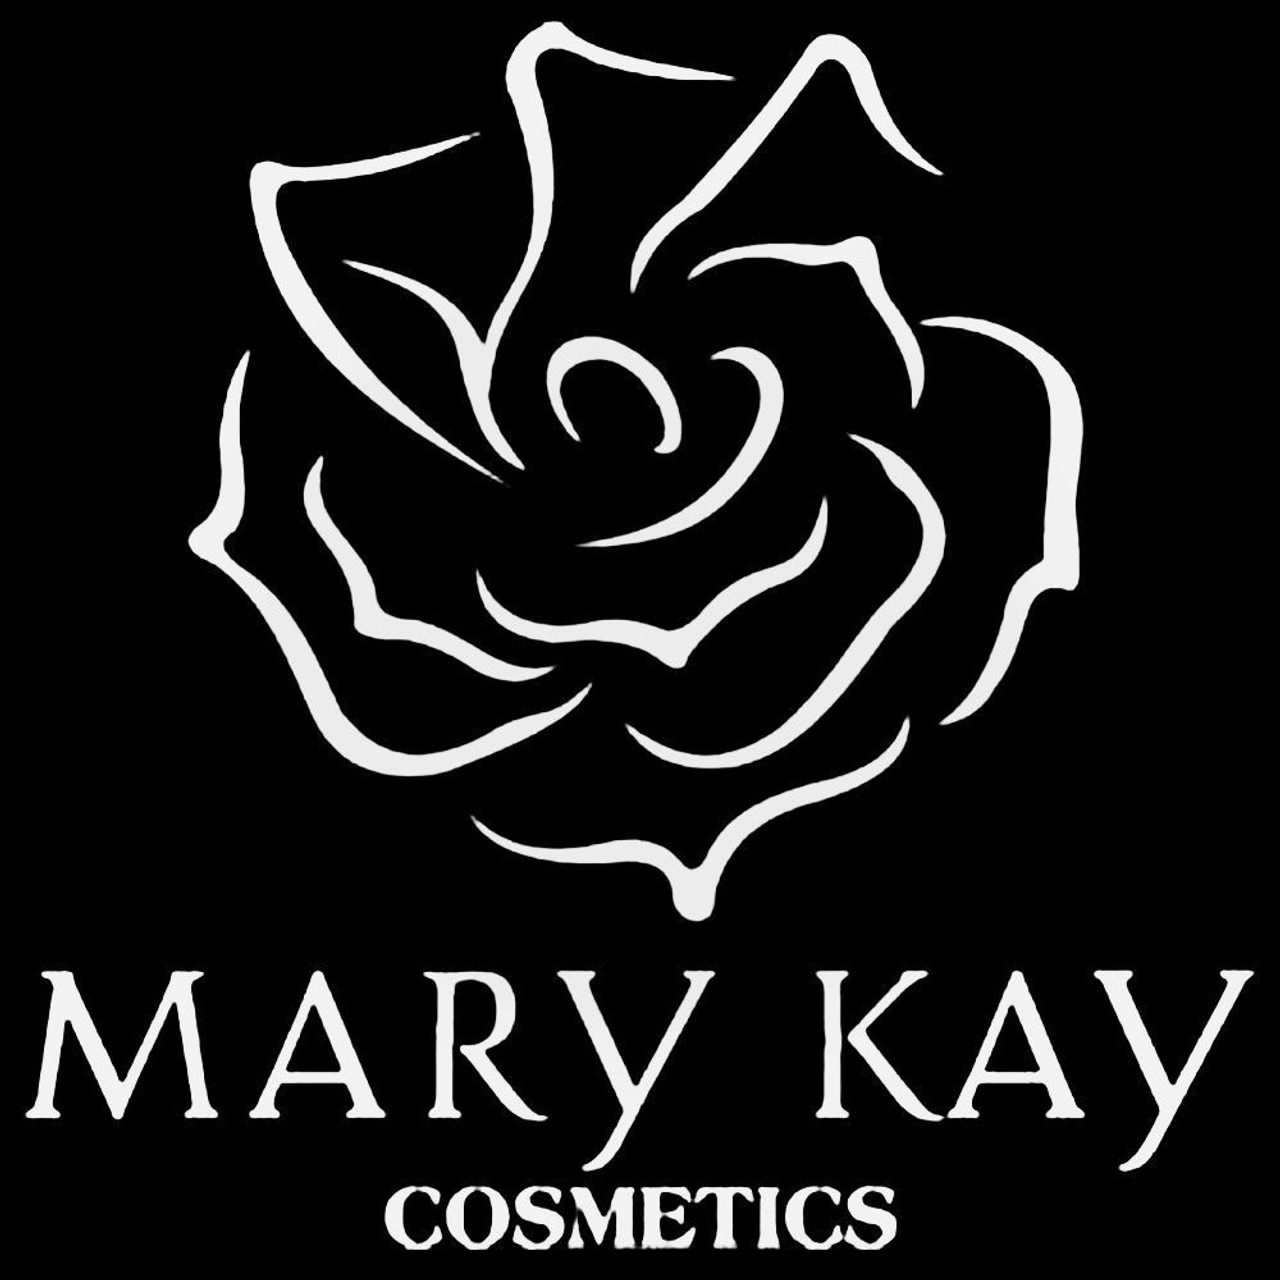 mary kay lipstick coloring pages   Mary Kay Cosmetics Logo Decal Sticker